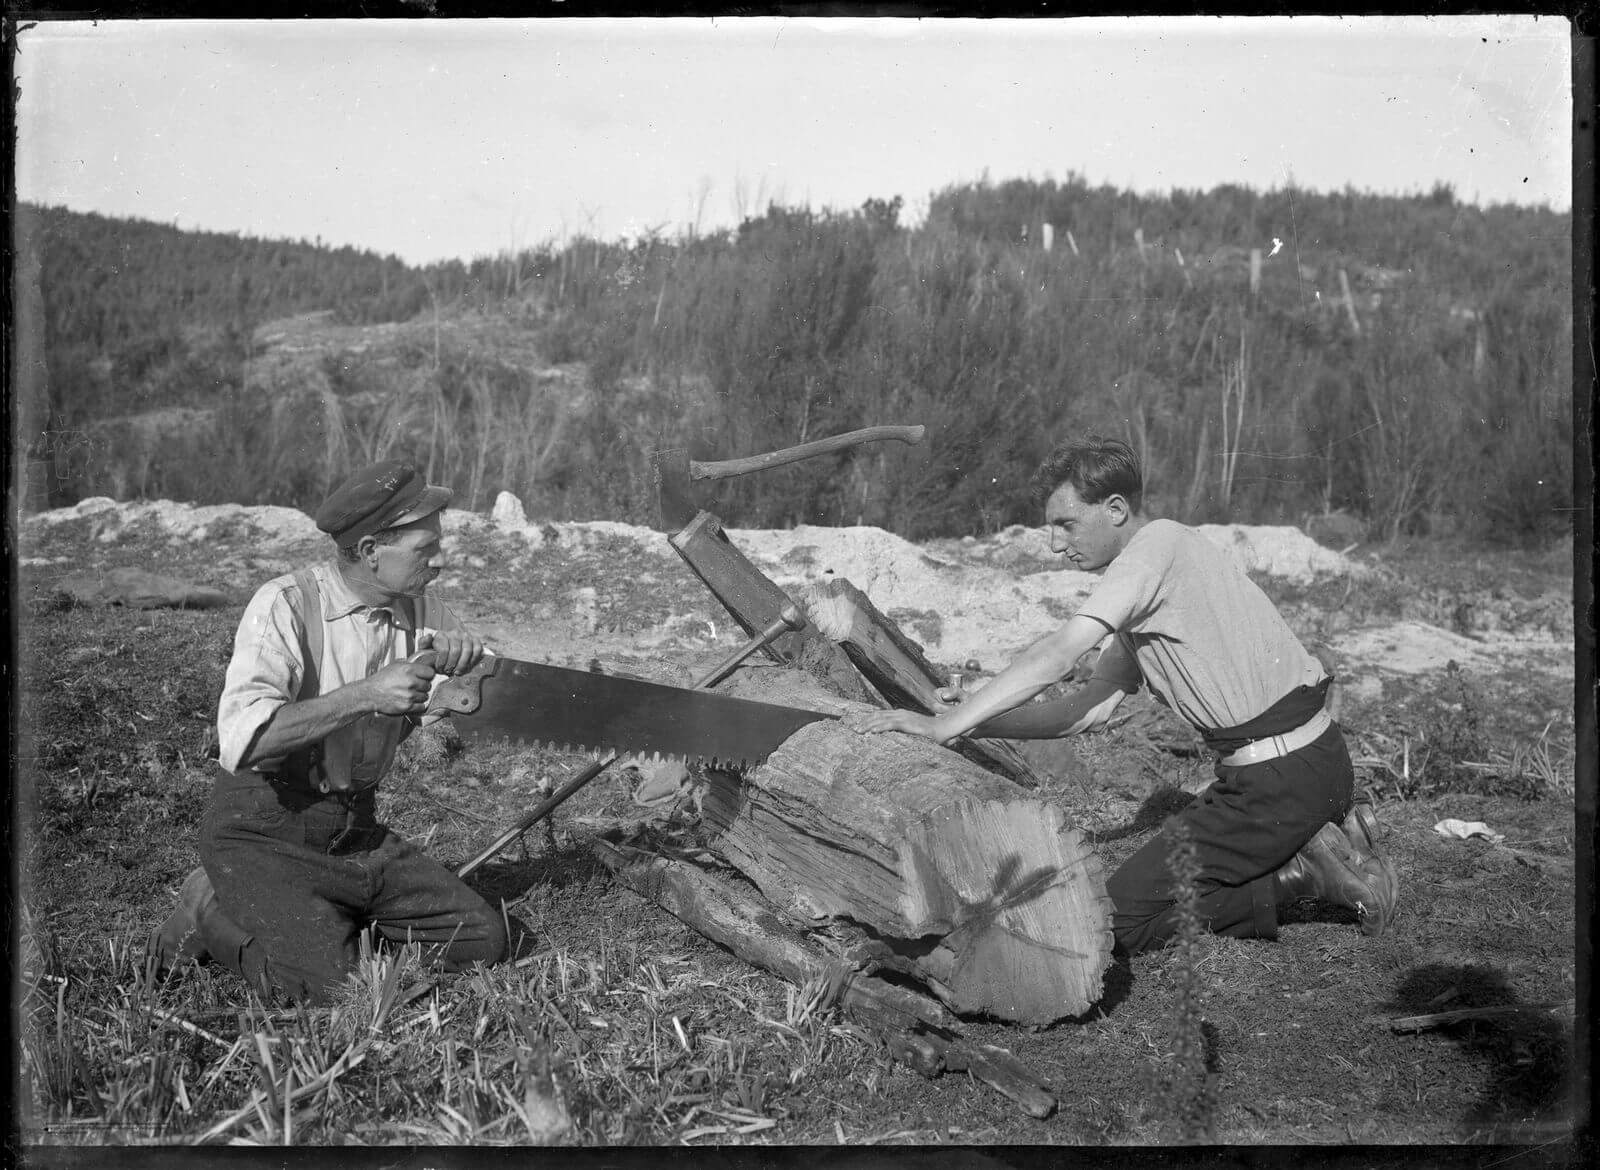 Image of two men sawing a big piece of timber, from the Bullswool Farm Heritage Working Farm Tools Museum